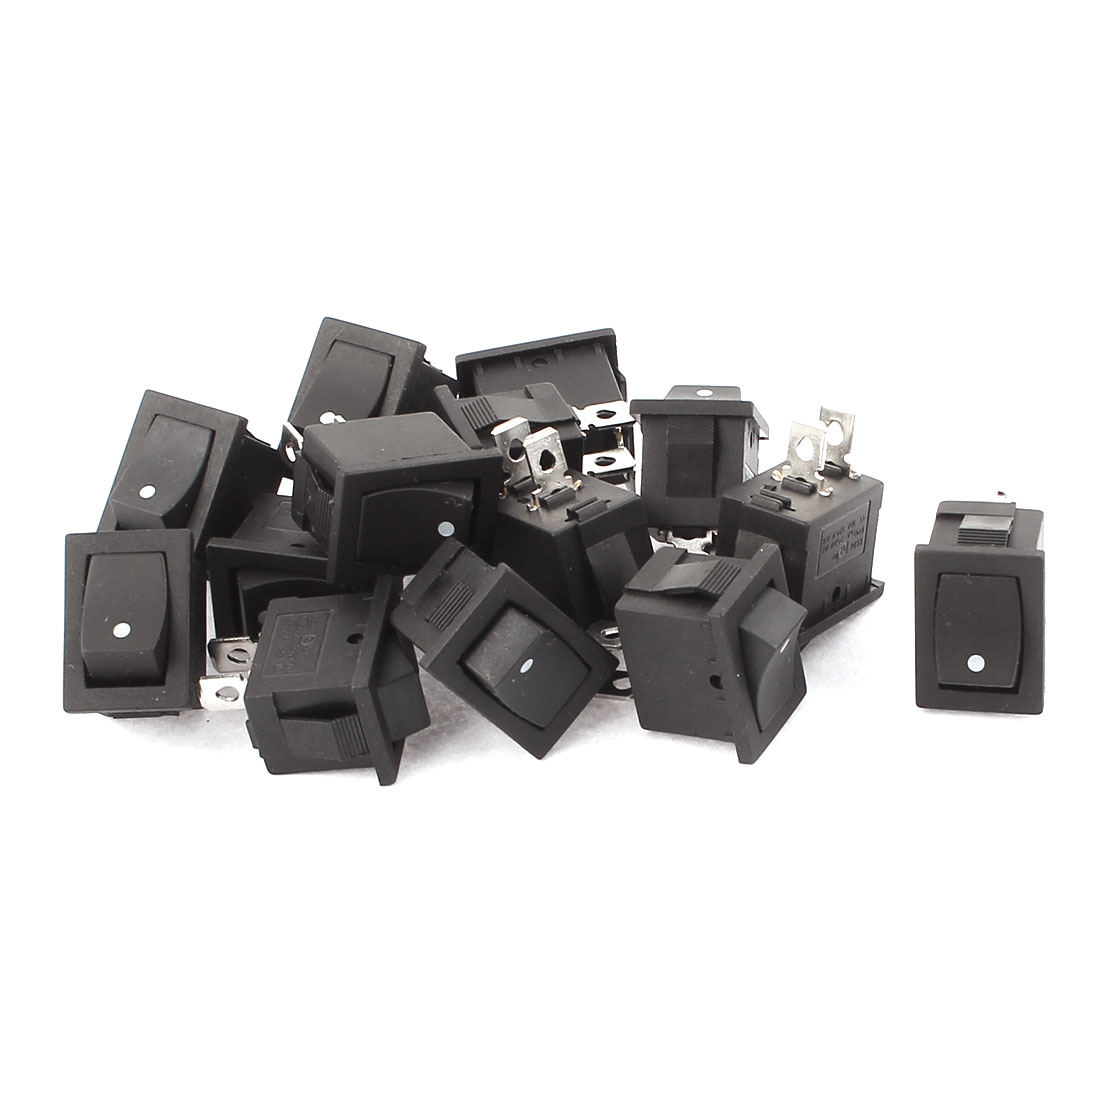 14 PCS AC125V 10A AC250V 6A Panel Mount Snap-In SPST I/O Rocker Switch KCD1-101